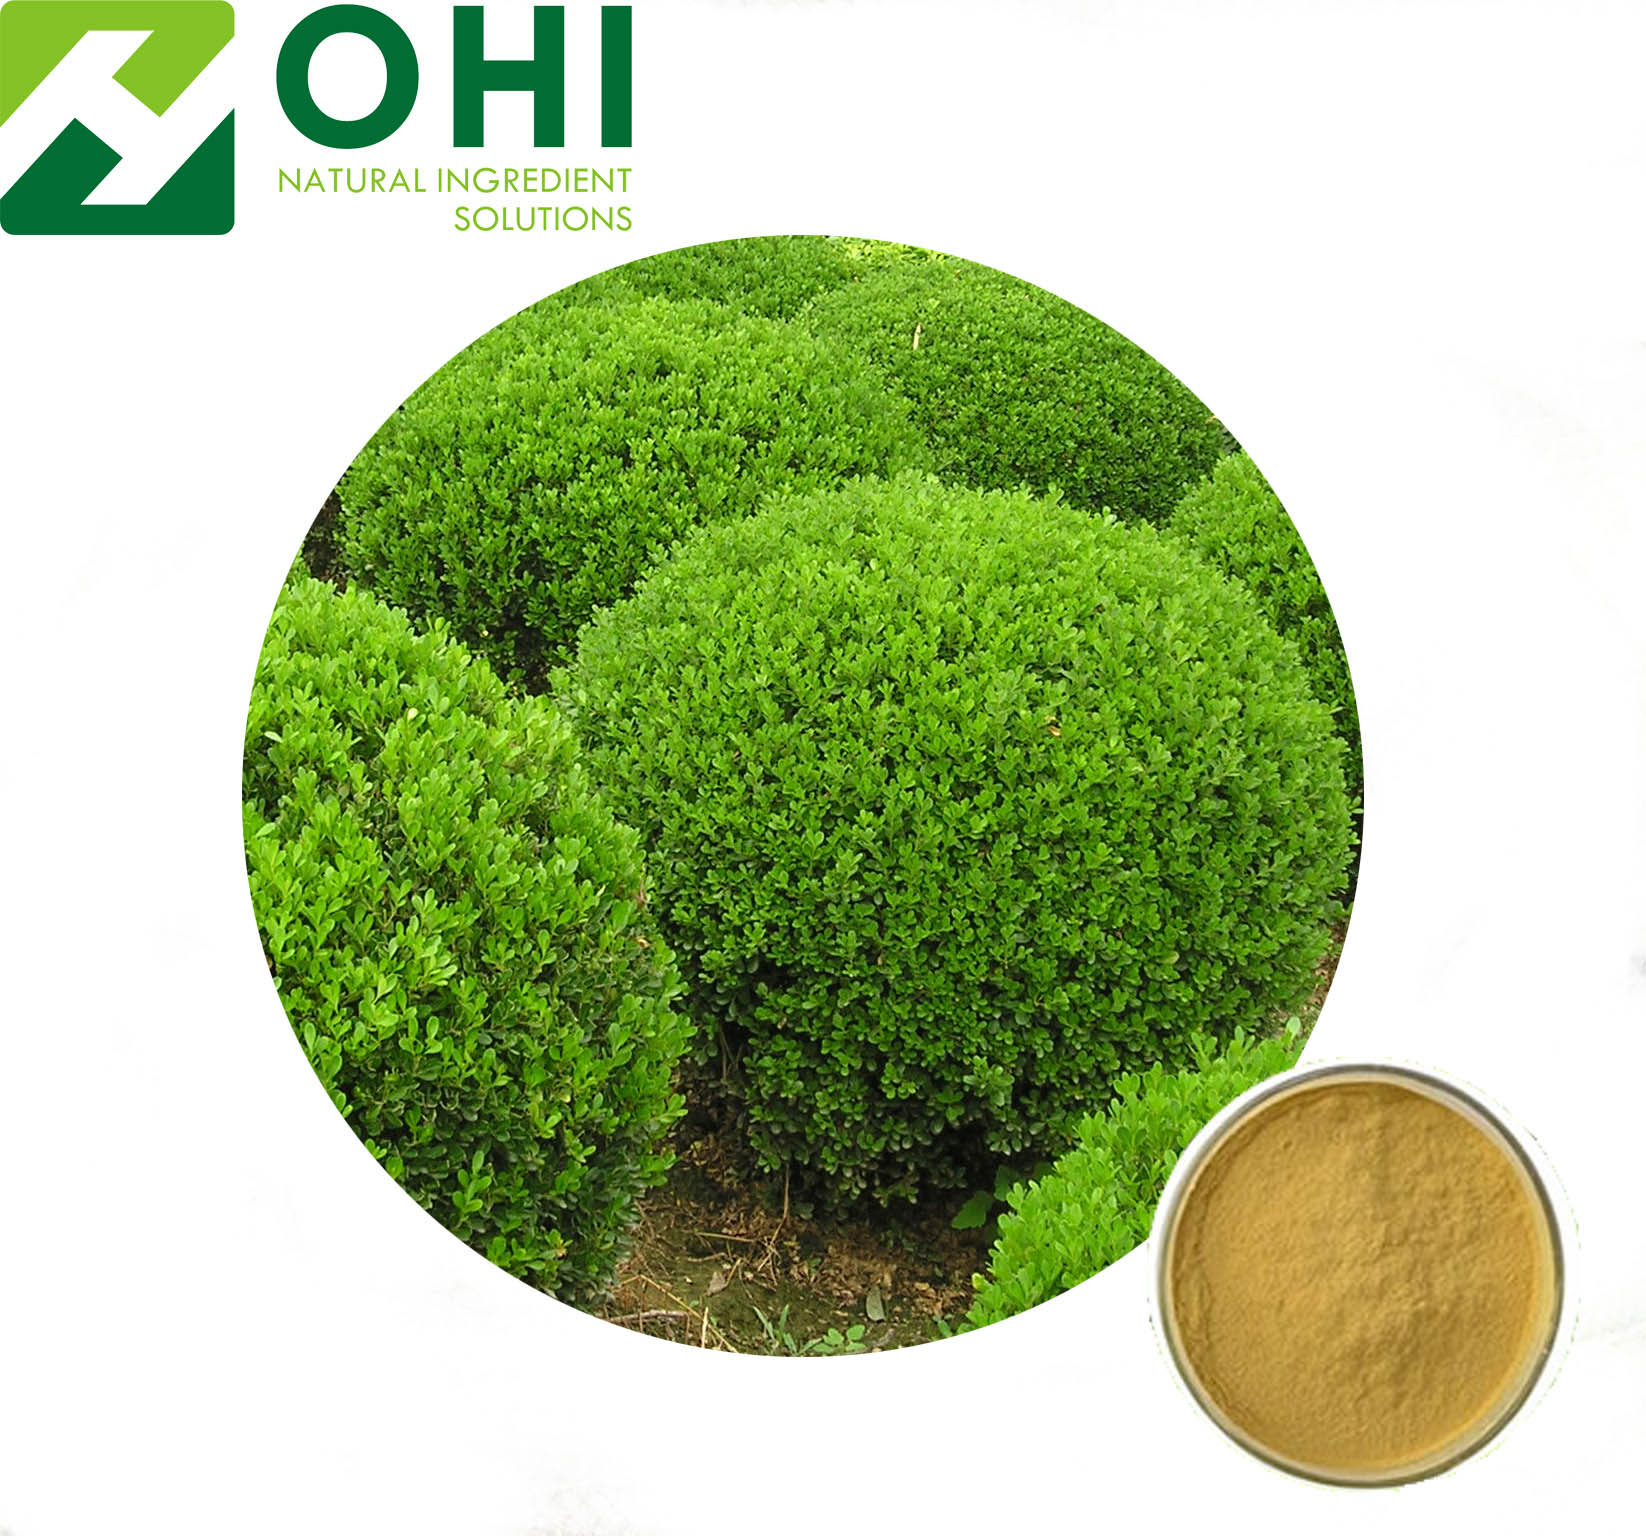 Boxwood Extract